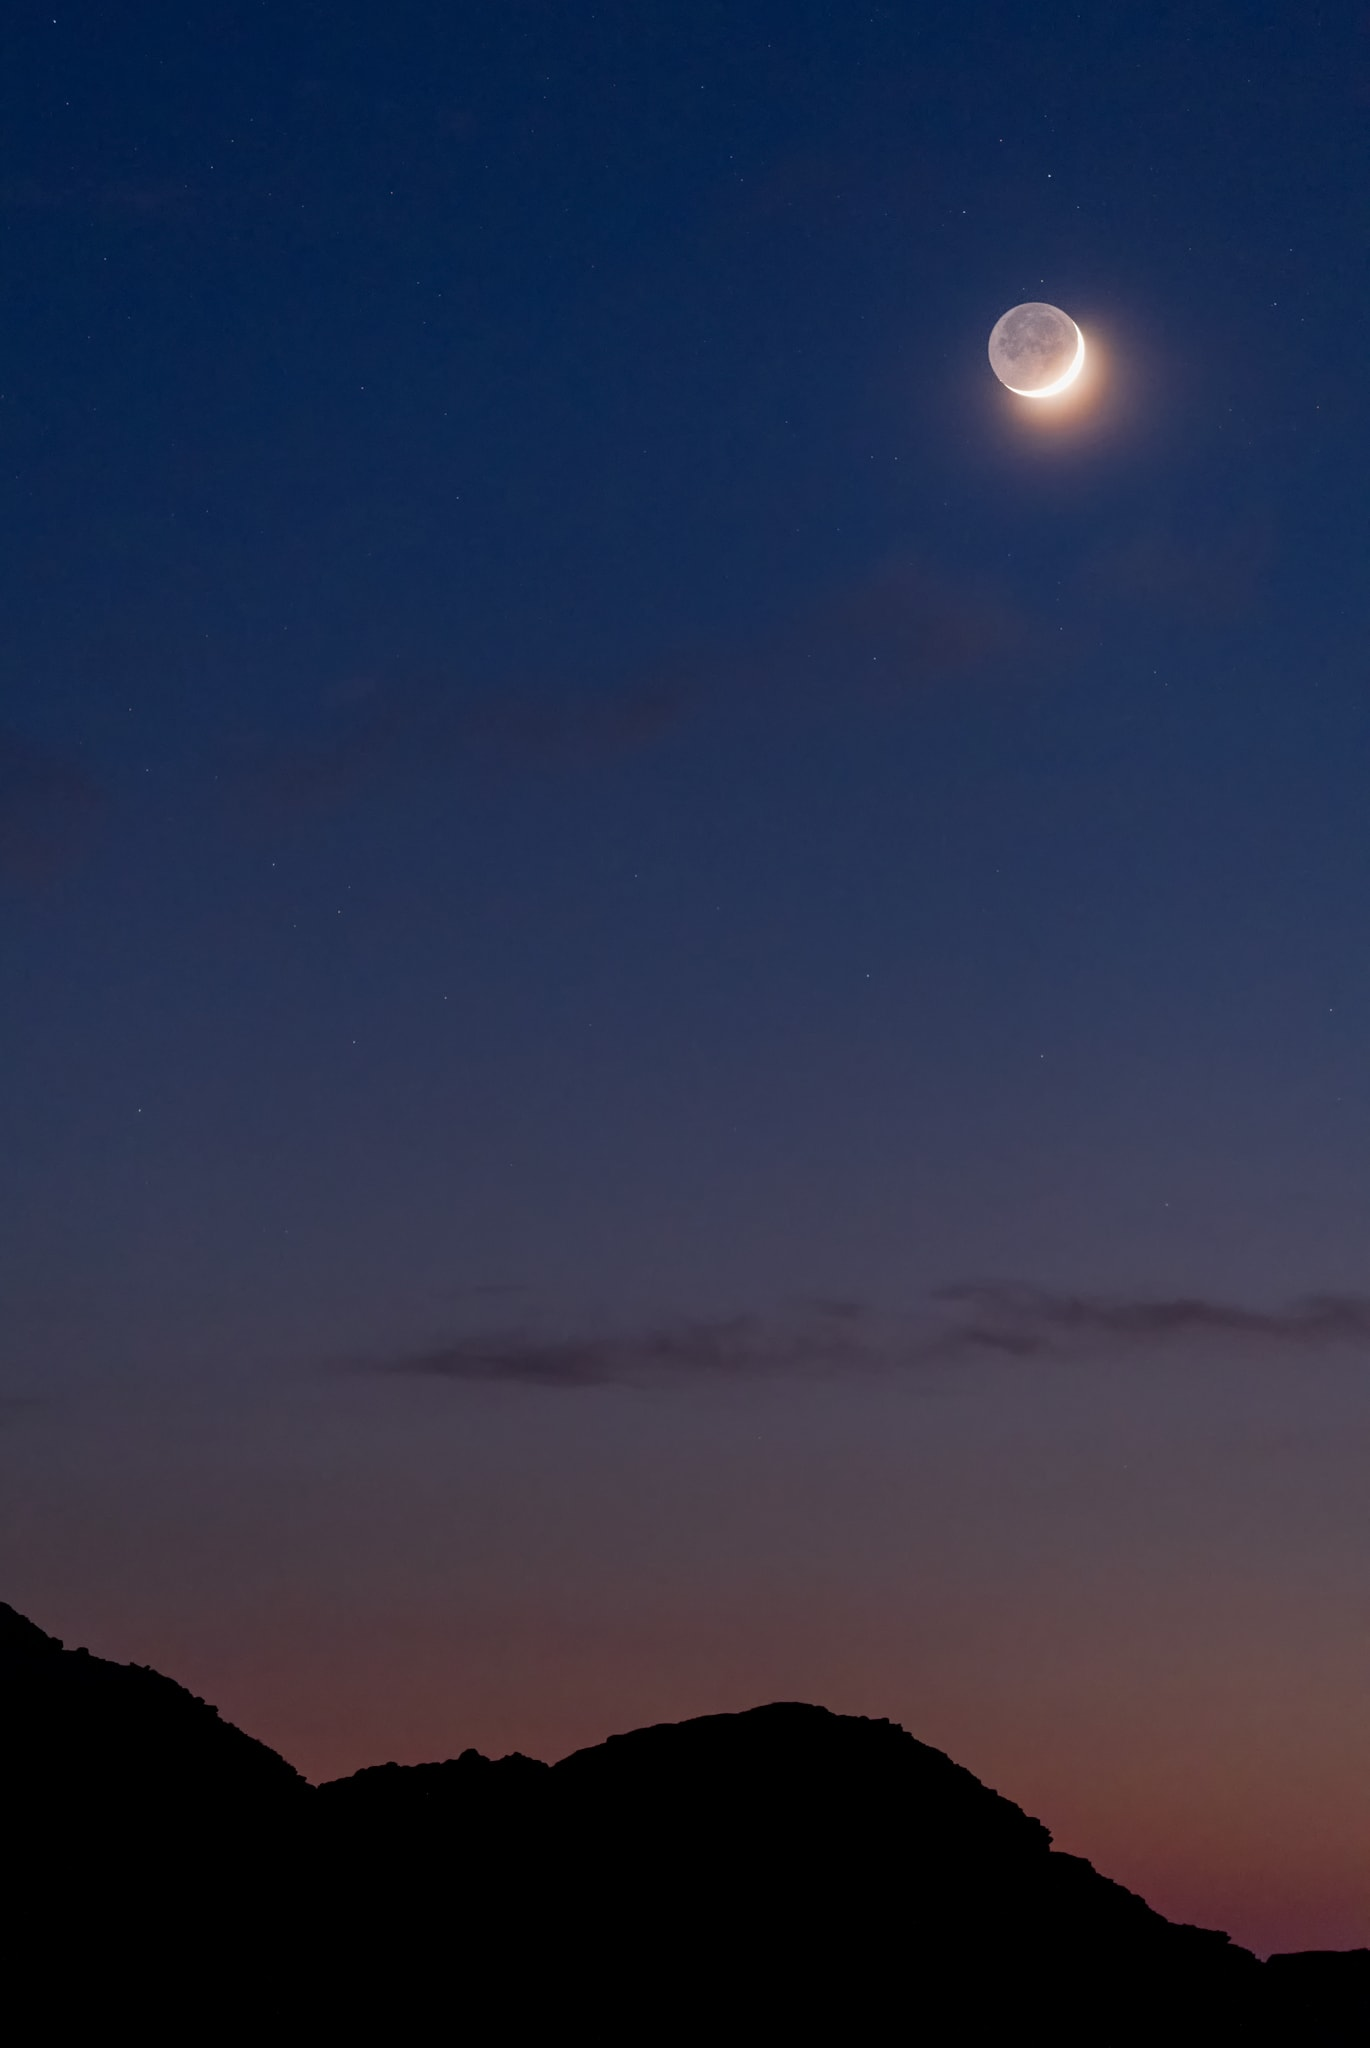 Earthshine – reflecting light from the Earth onto the moon. As seen from Spain.